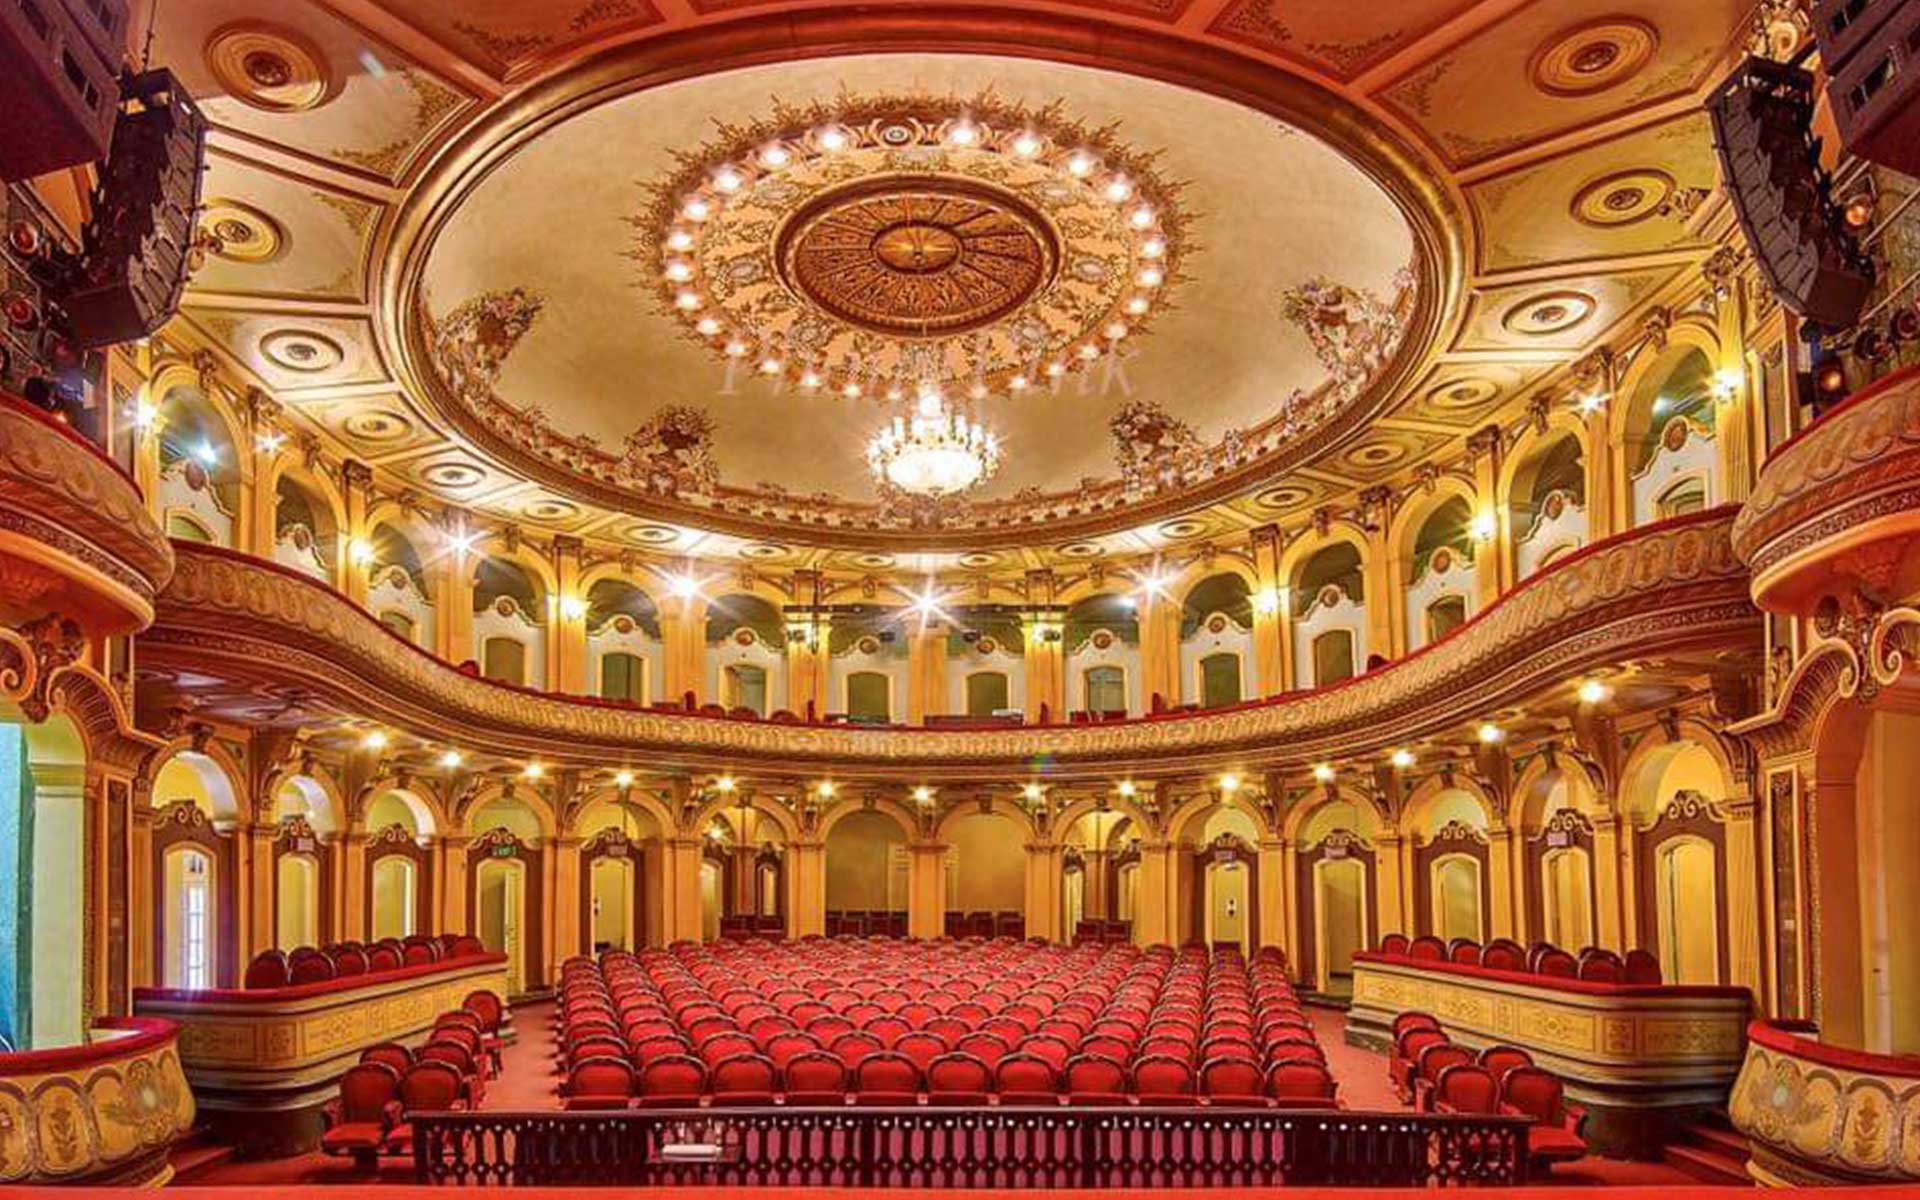 Hai Phong Opera House's architecture